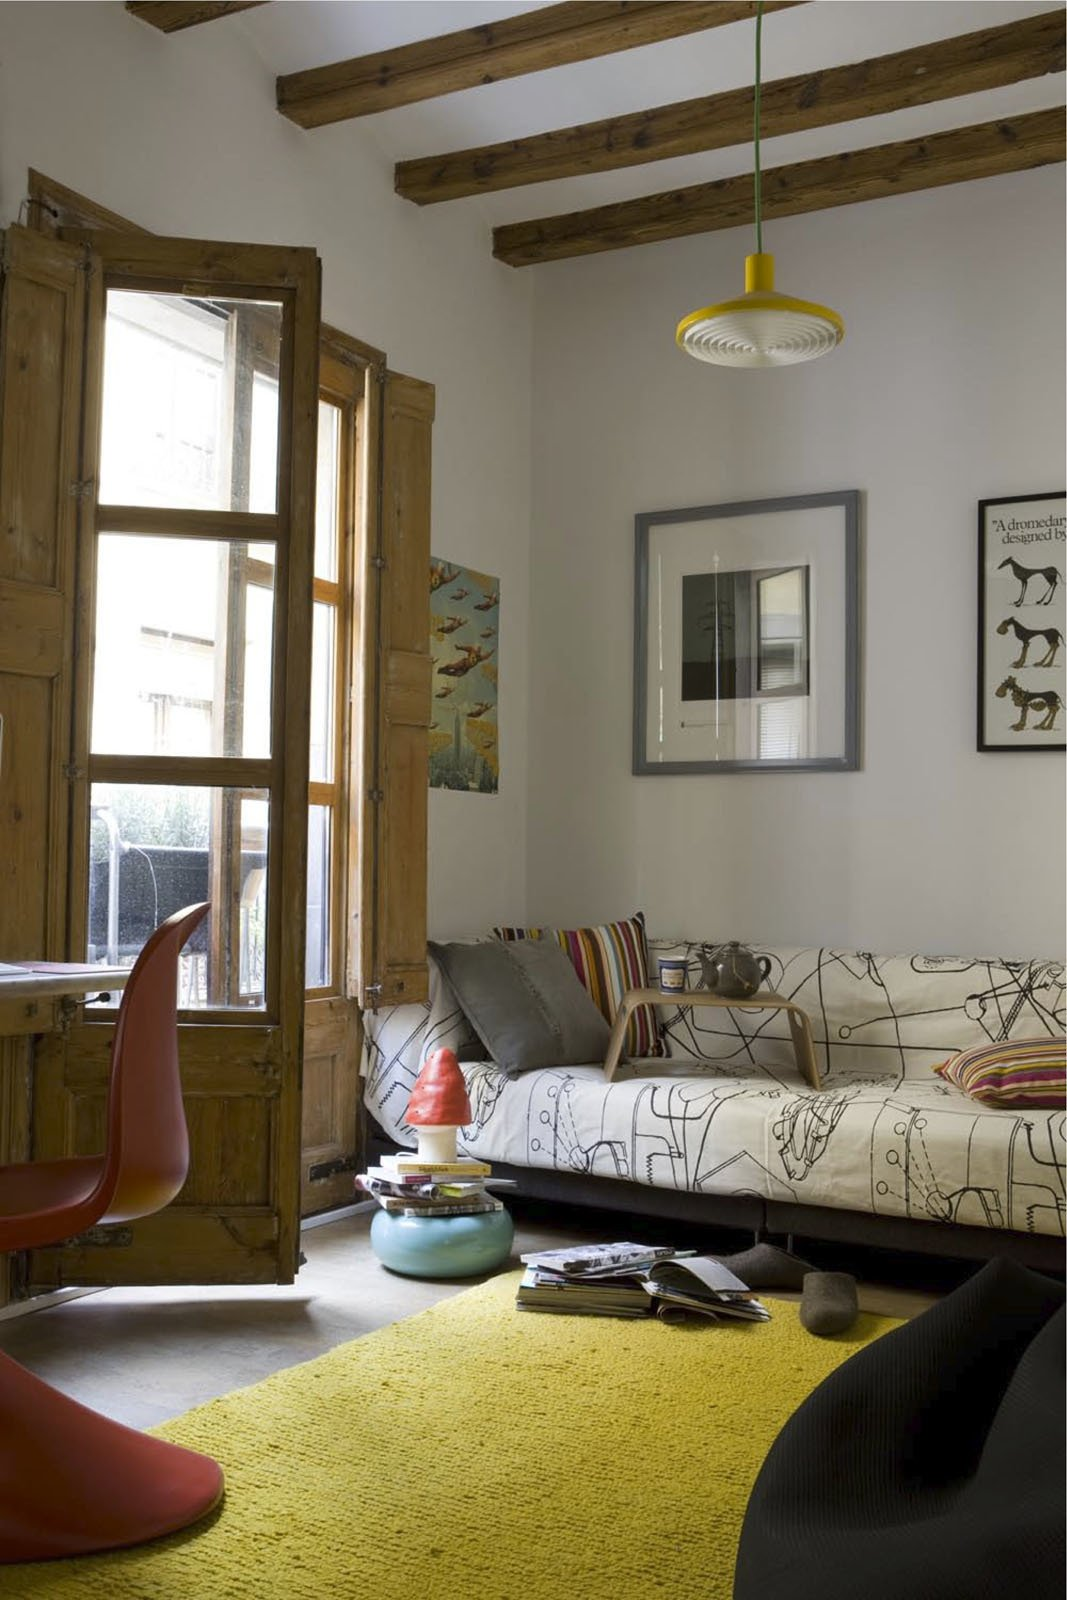 Wishing to avoid using harsh chemicals, the couple had the 18th-century beams and French doors in the living room and elsewhere sandblasted to rid them of woodlice. The rug, by Nani Marquina, is renewable and biodegradable as well as ethically produced.  Photo 9 of 10 in 10 Modern Renovations to Homes in Spain from Green Living in Barcelona